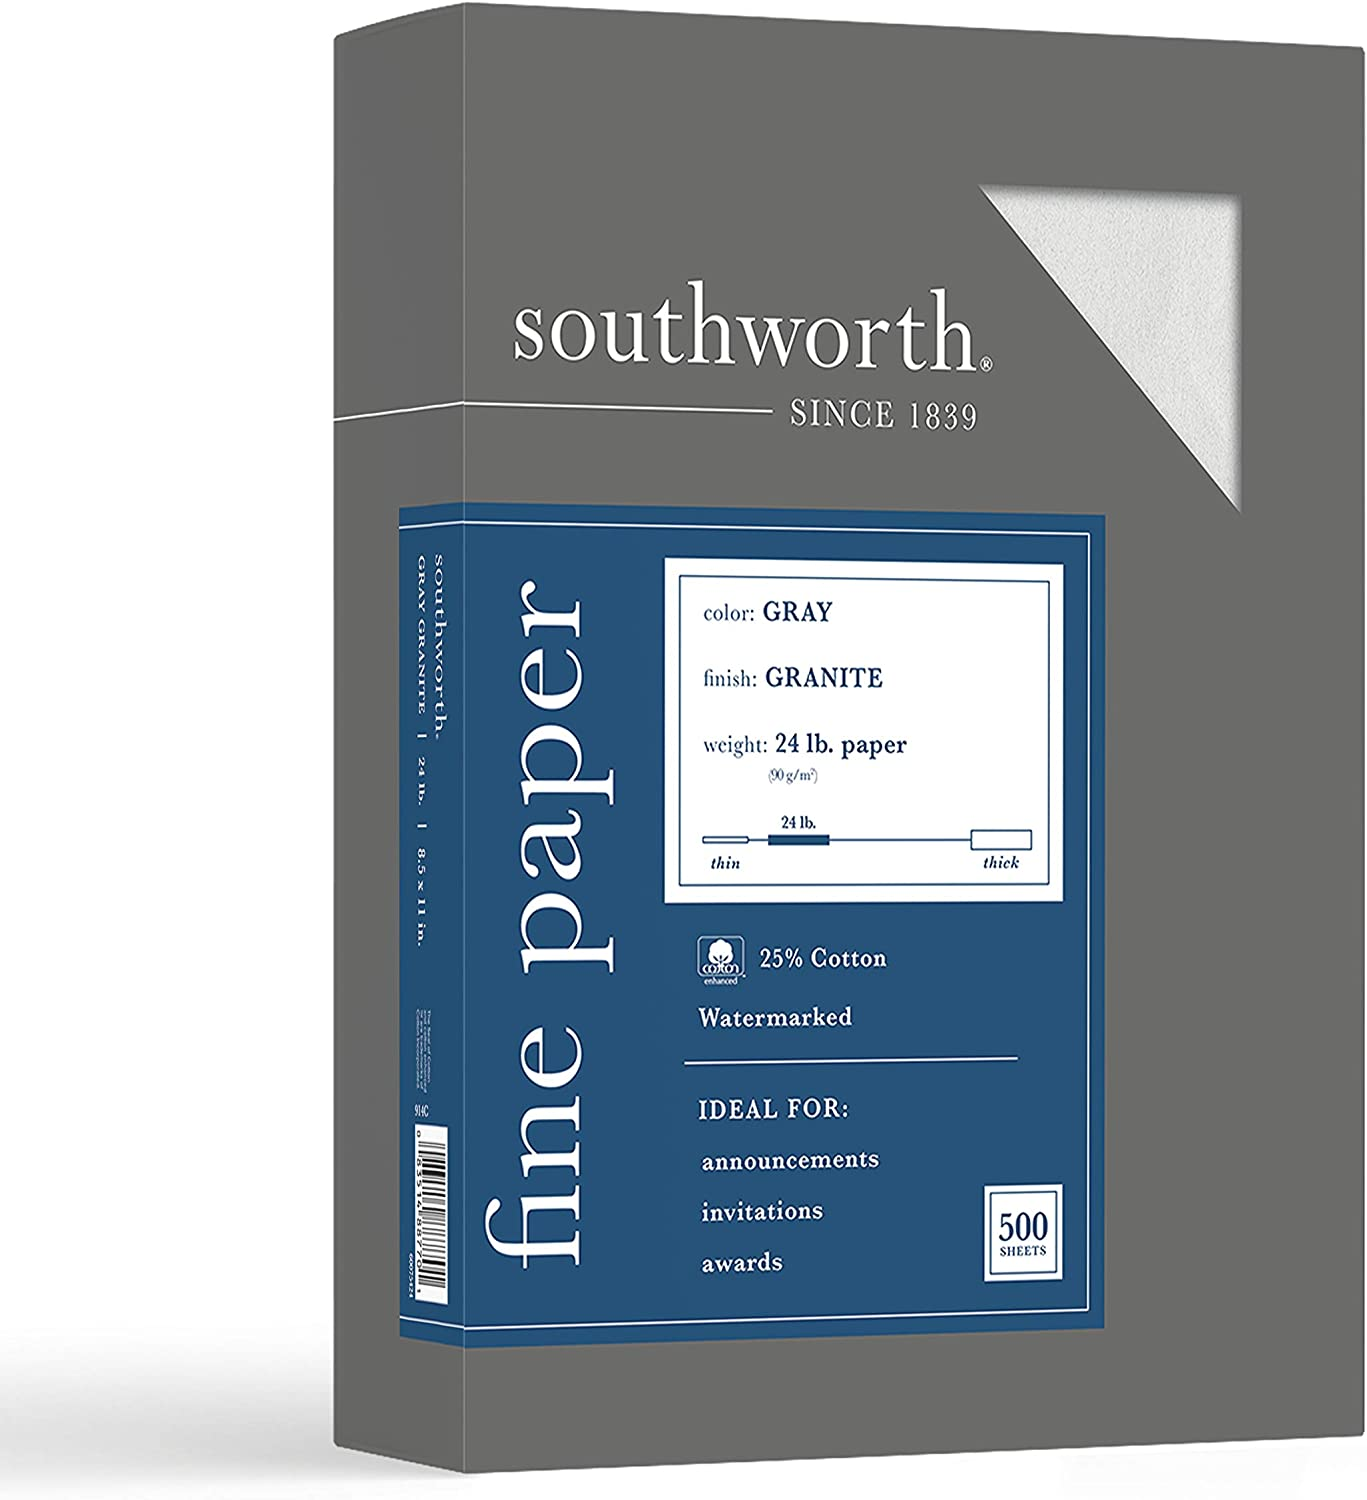 "Southworth 25% Cotton Granite Specialty Paper, 8.5"" x 11"", 24 lb/90 GSM, Gray, 500 Sheets - Packaging May Vary (914C)"